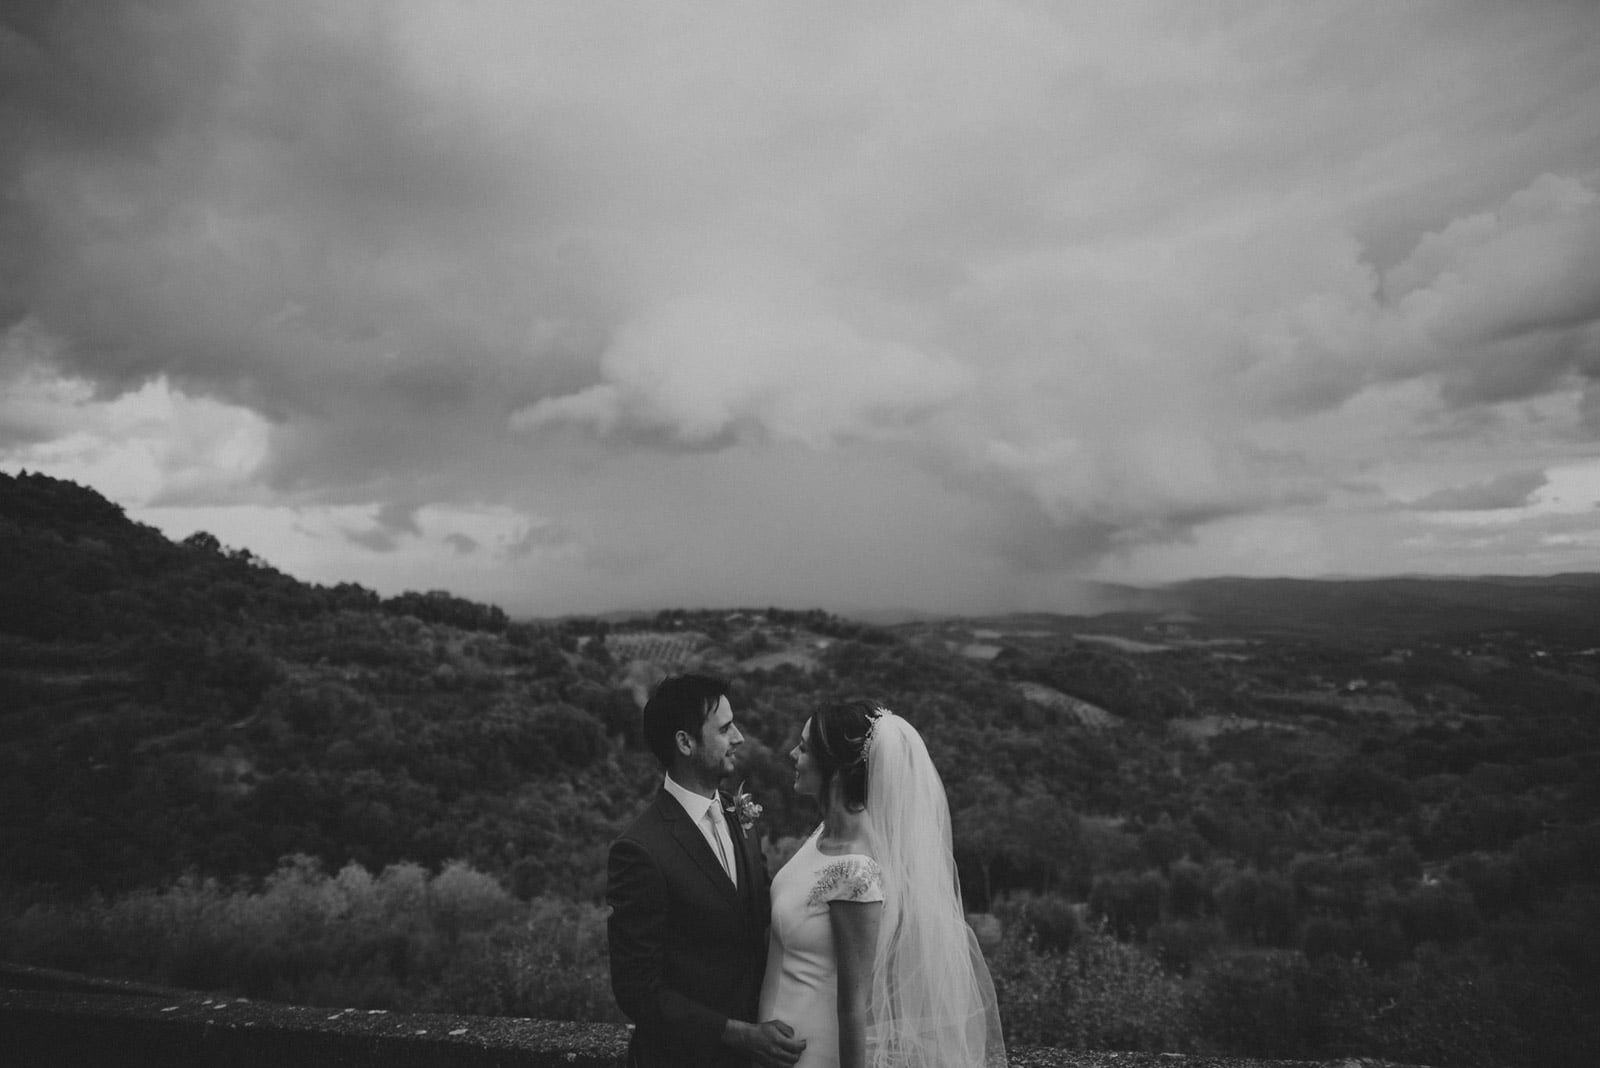 074-wedding-tuscany-san-galgano-federico-pannacci-photographer